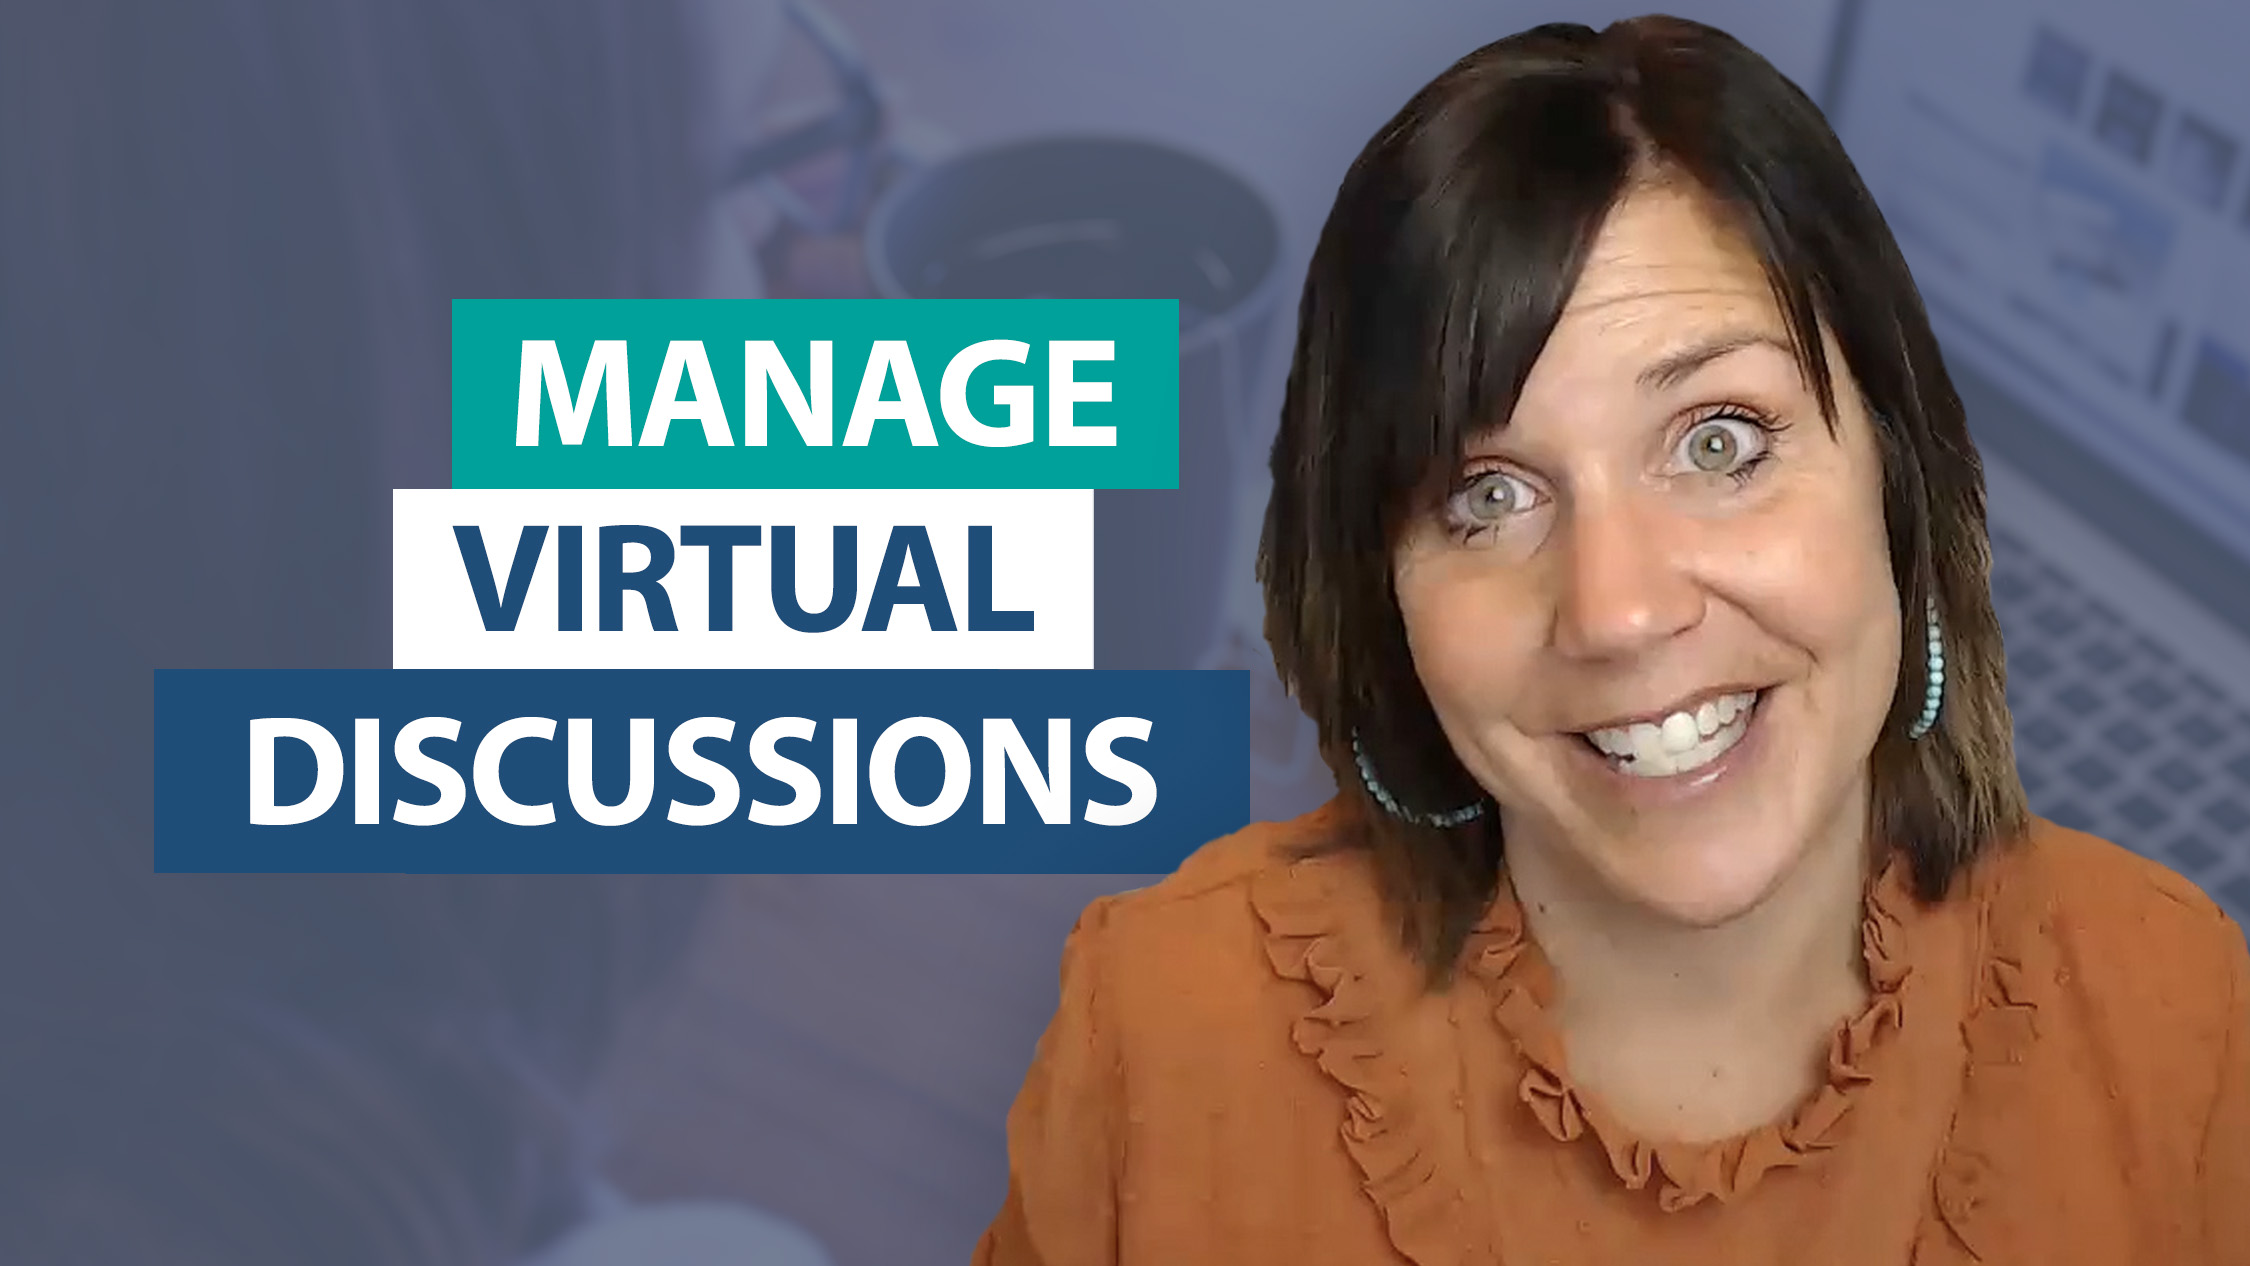 Ask Smekens: How do I manage whole-class discussions virtually?